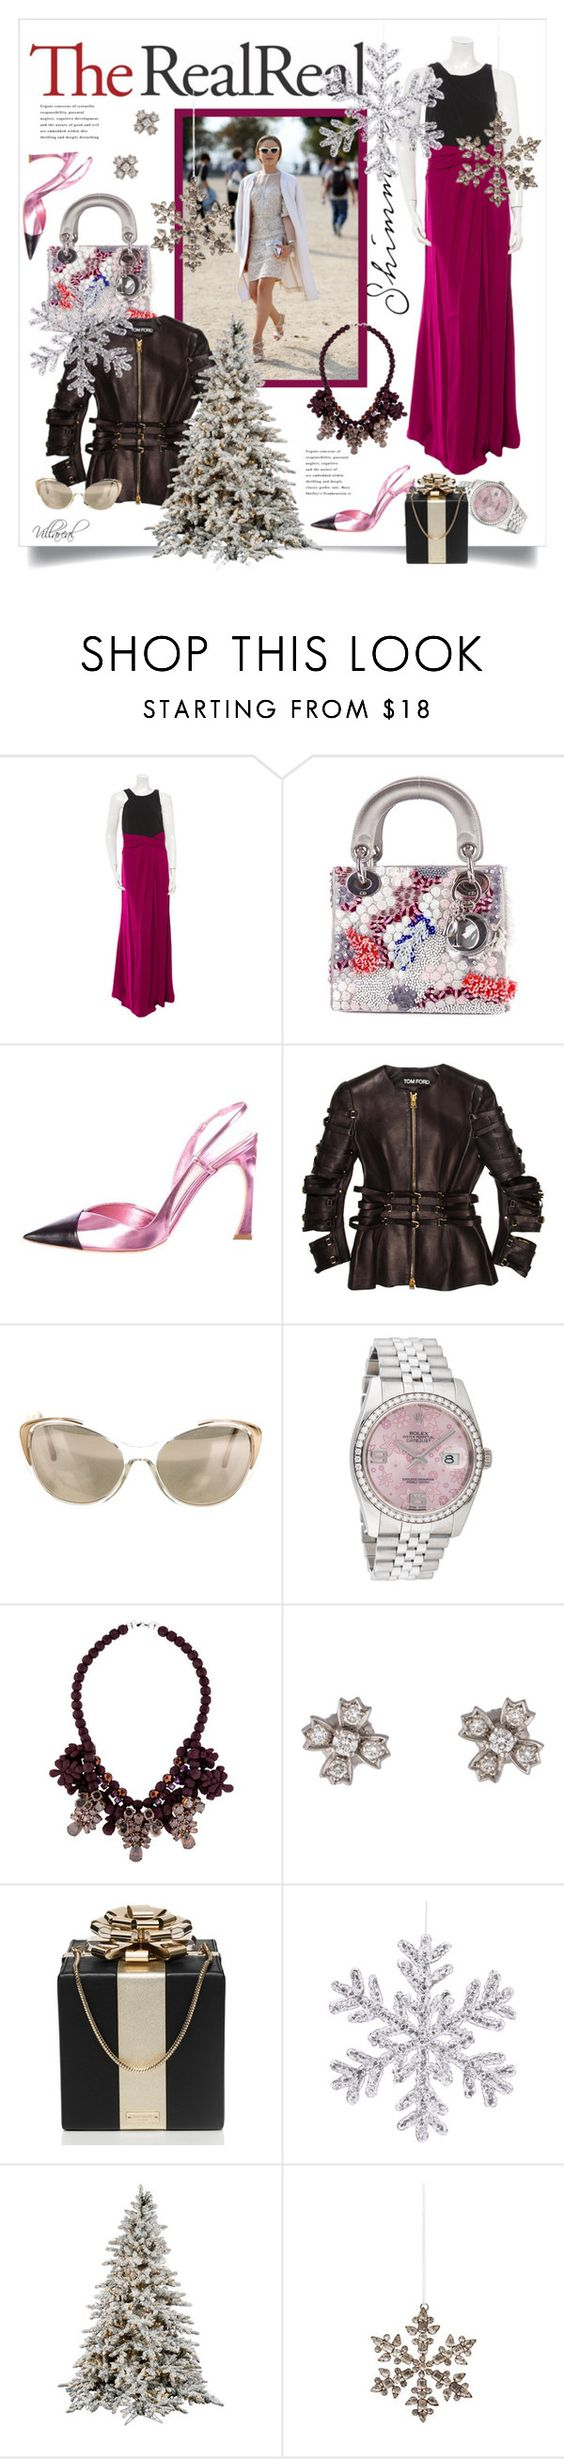 """Holiday Sparkle With The RealReal:Contest Entry"" by riza-villareal ❤ liked on Polyvore featuring David Meister, Christian Dior, Tom Ford, Dolce&Gabbana, Rolex, Ek Thongprasert, Tiffany & Co., Kate Spade and Shishi"